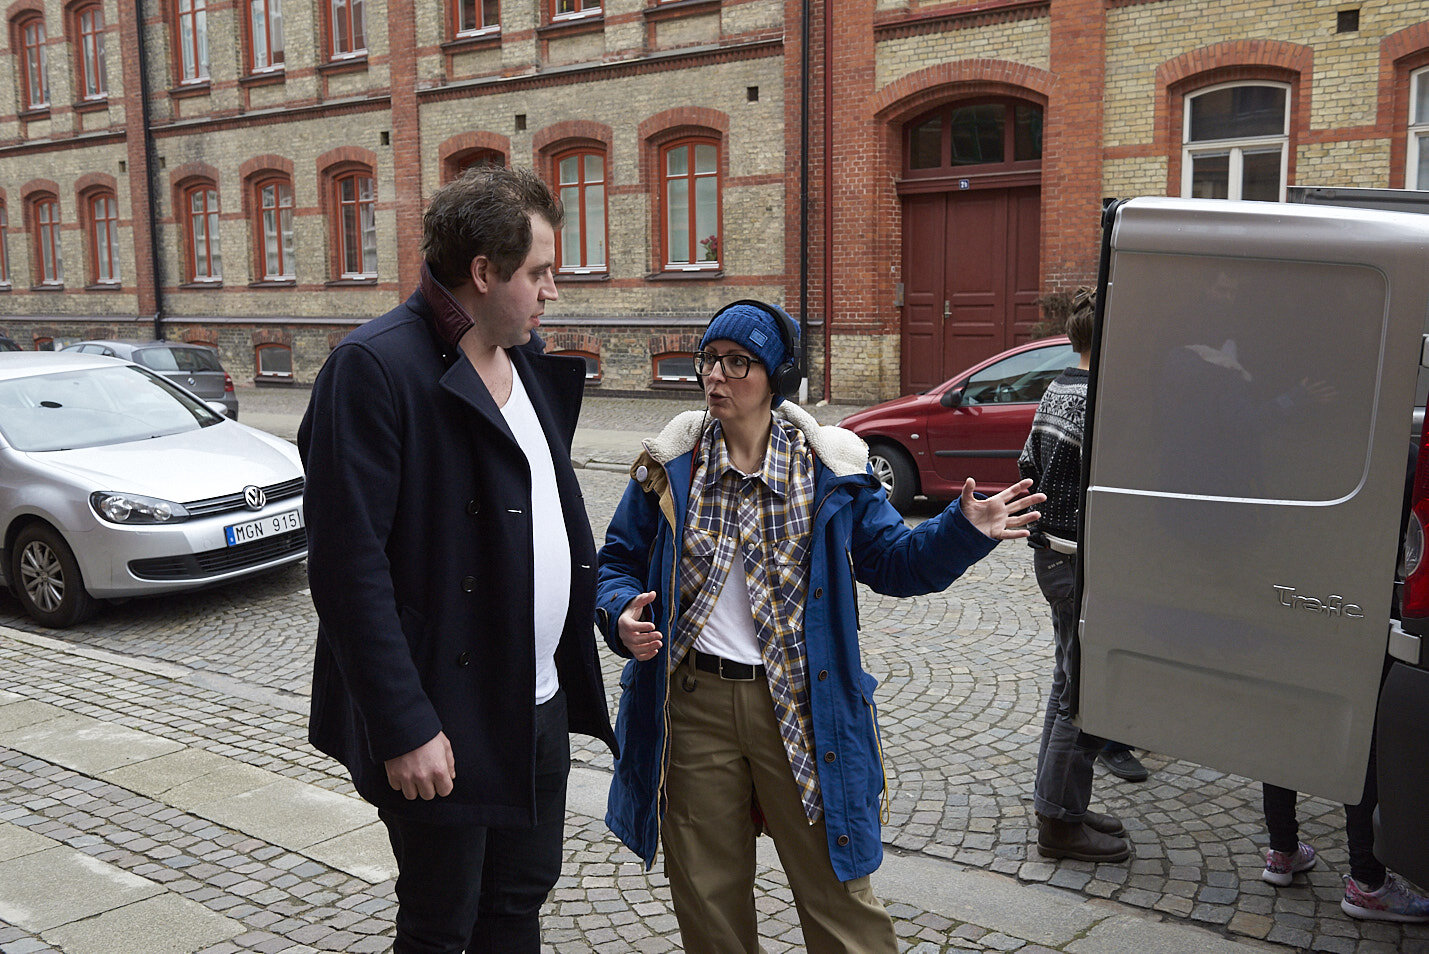 Director Thérèse Ahlbeck and actor Johannes Wanselow, playing one of the kidnappers, on set of Happy Street. Tiny Lumberjack copyright.